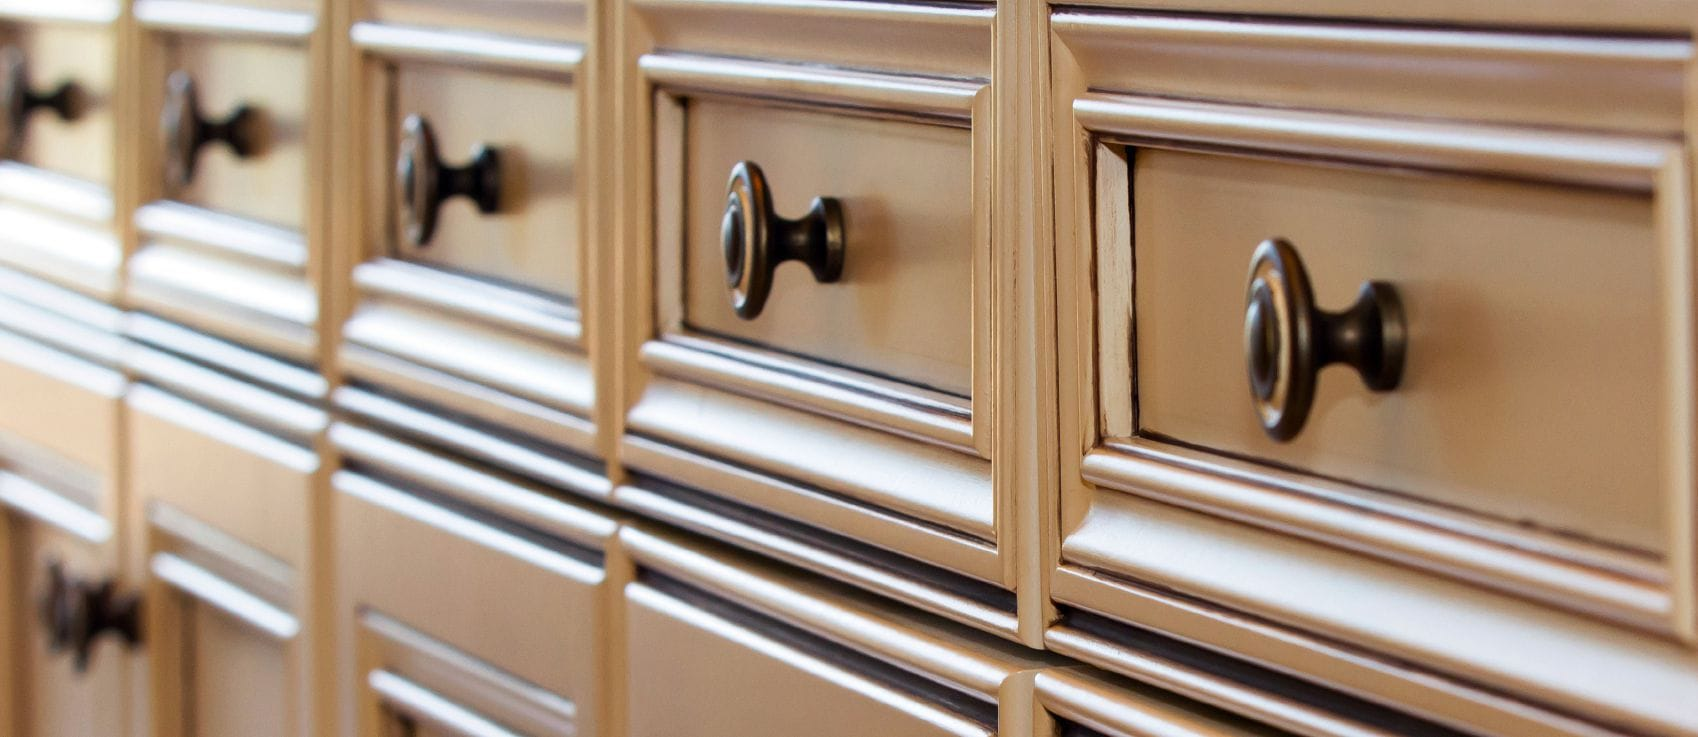 spotlight on kitchen cabinets cheap cabinets for kitchen Row of kitchen cabinet drawer fronts